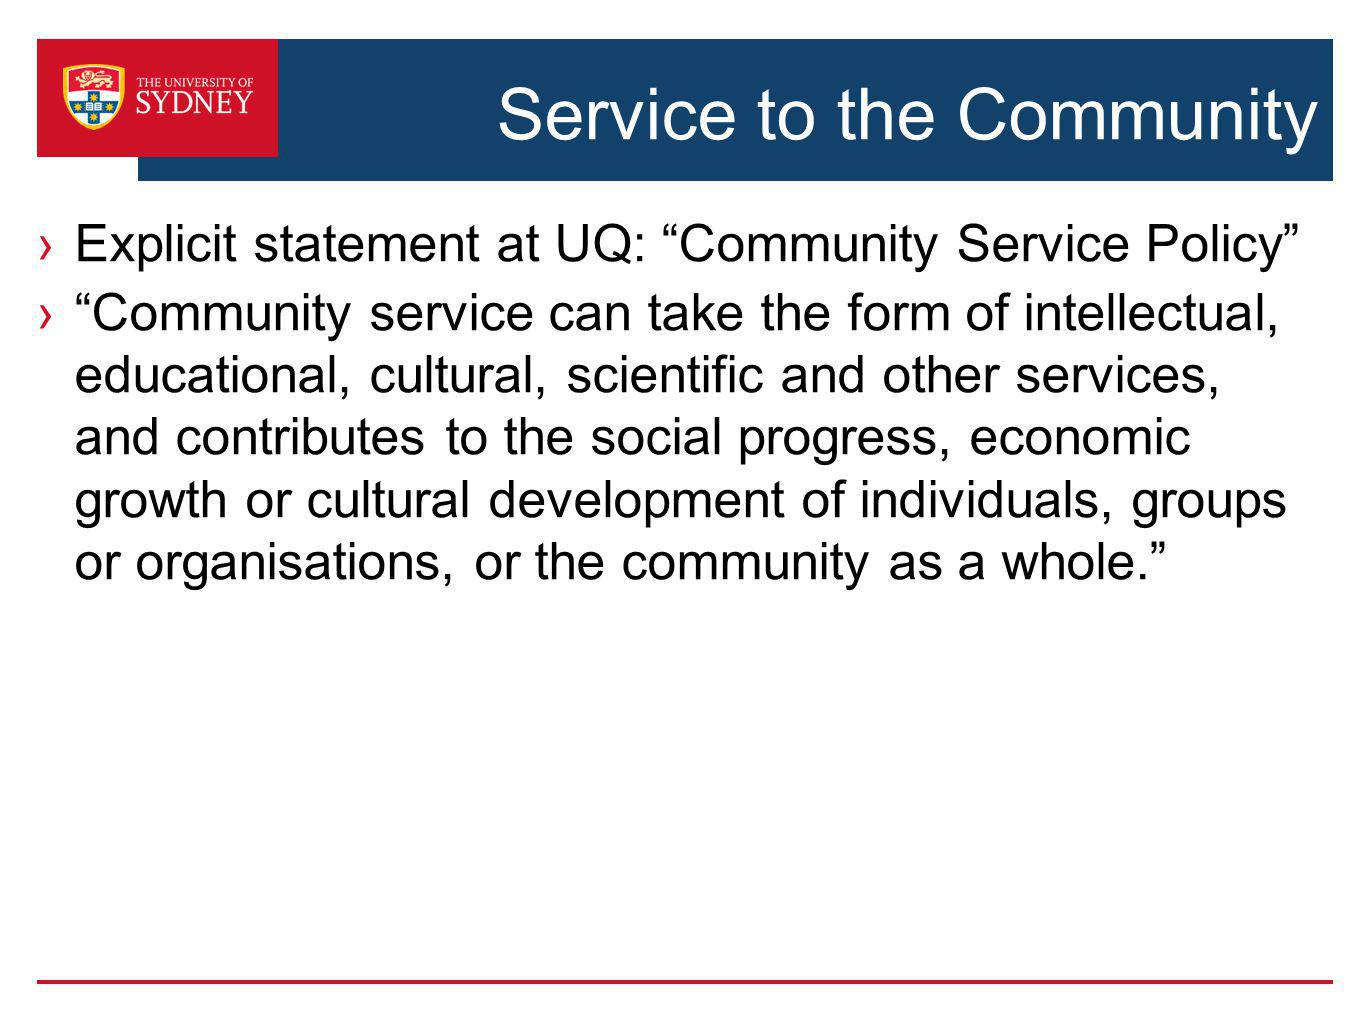 Service to the Community Explicit statement at UQ: Community Service Policy Community service can take the form of intellectual, educational, cultural, scientific and other services, and contributes to the social progress, economic growth or cultural development of individuals, groups or organisations, or the community as a whole.